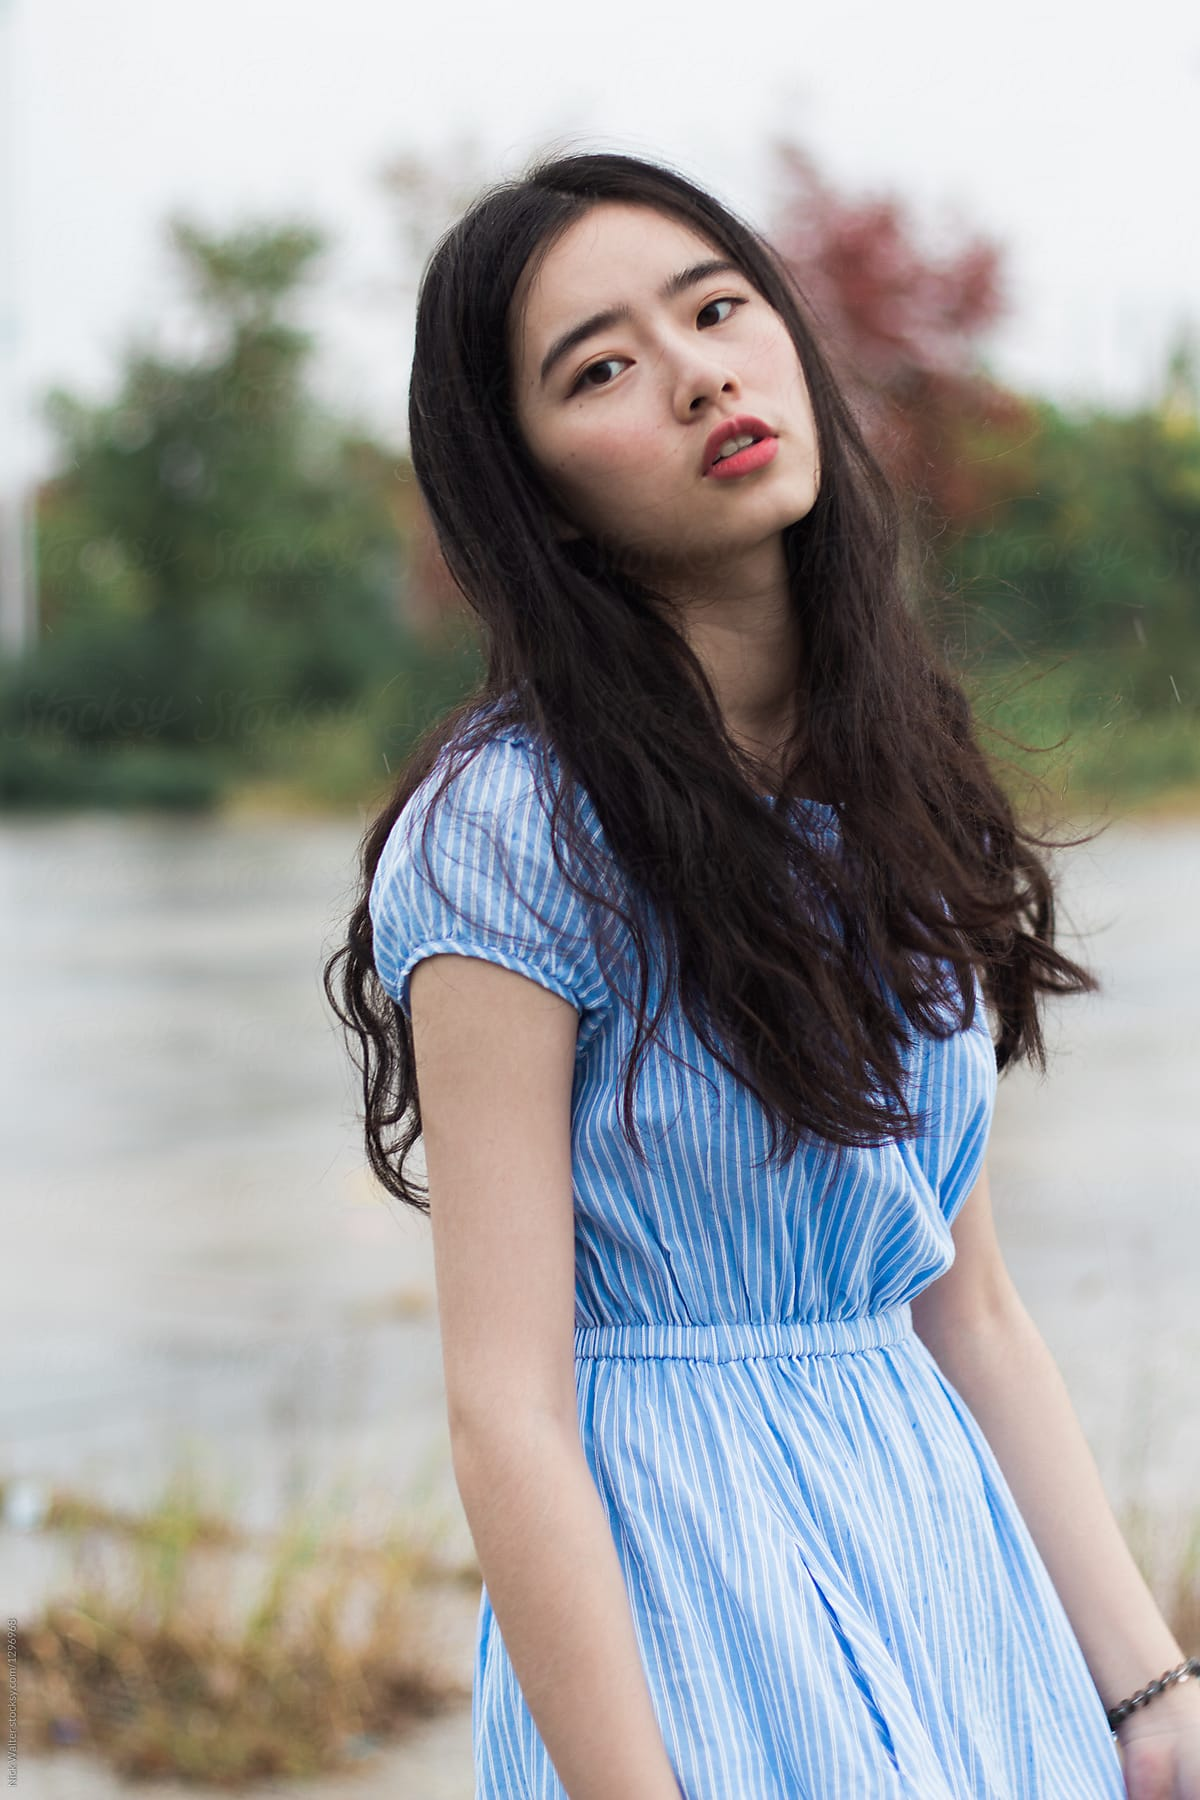 Chic Chinese Girl by Nicklaus Walter